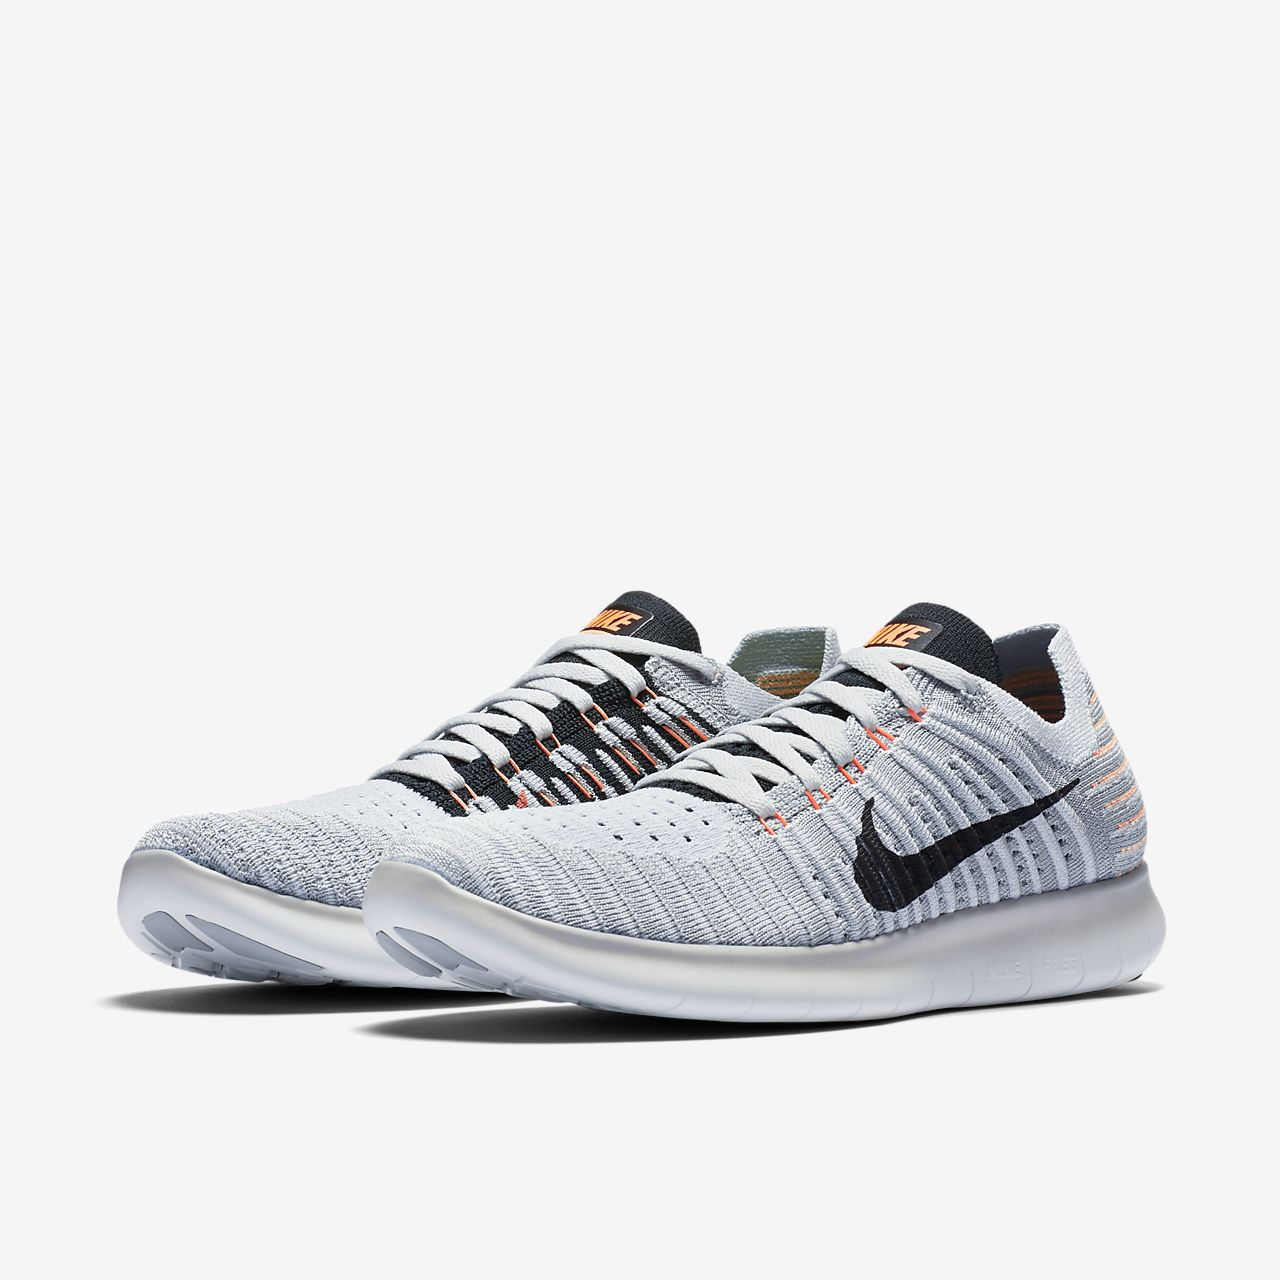 nike free run flyknit 2016 damen nz